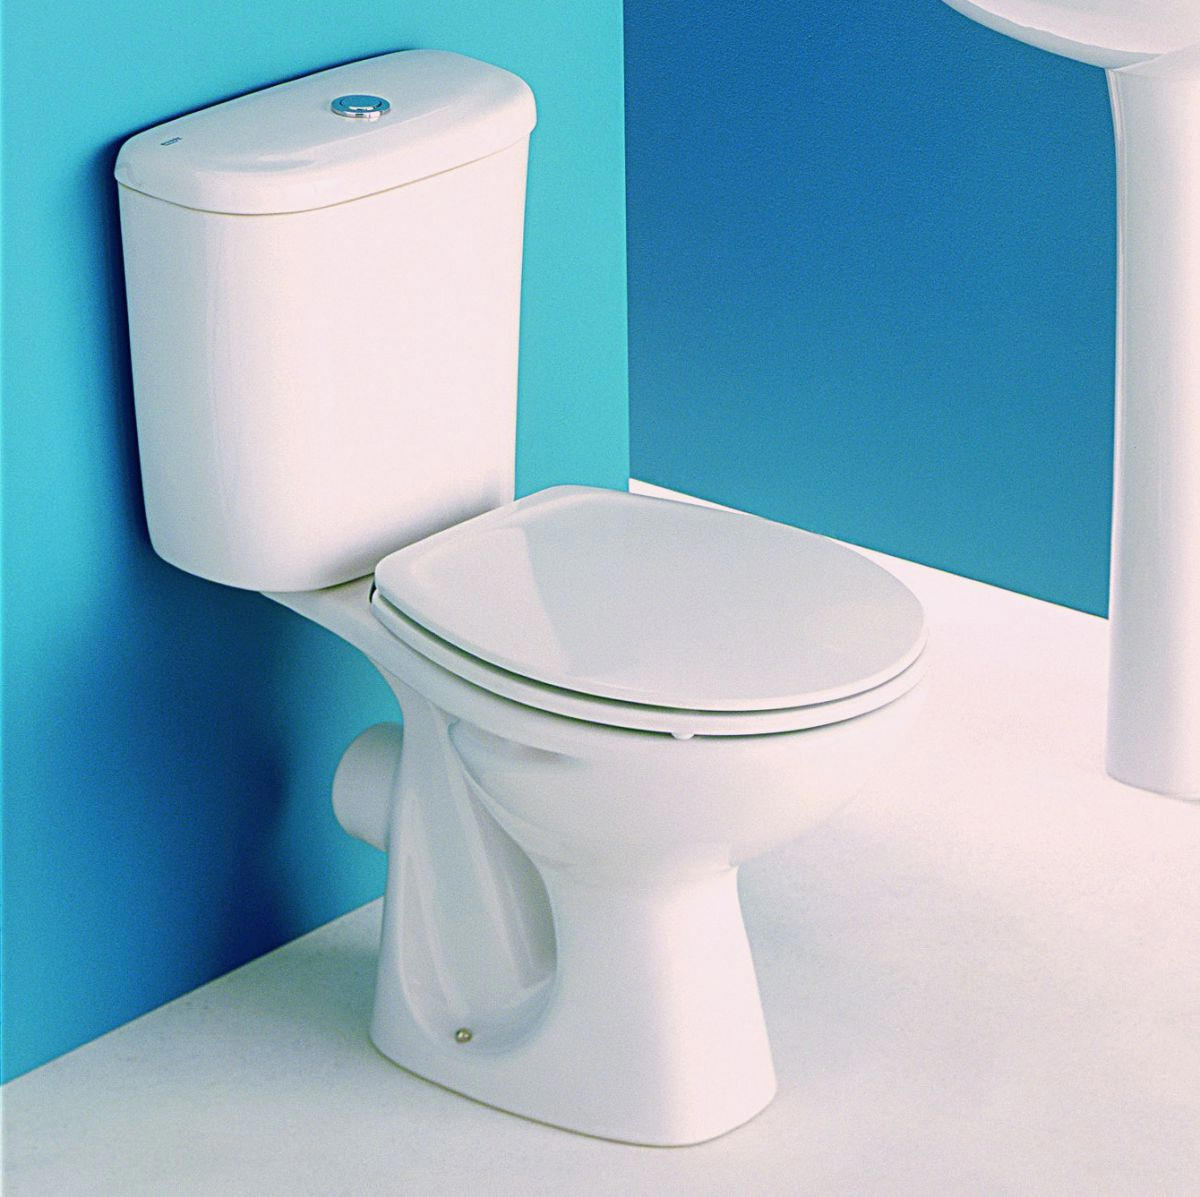 Roca Polo Zoom Floorstanding Wc Pan 34229a003